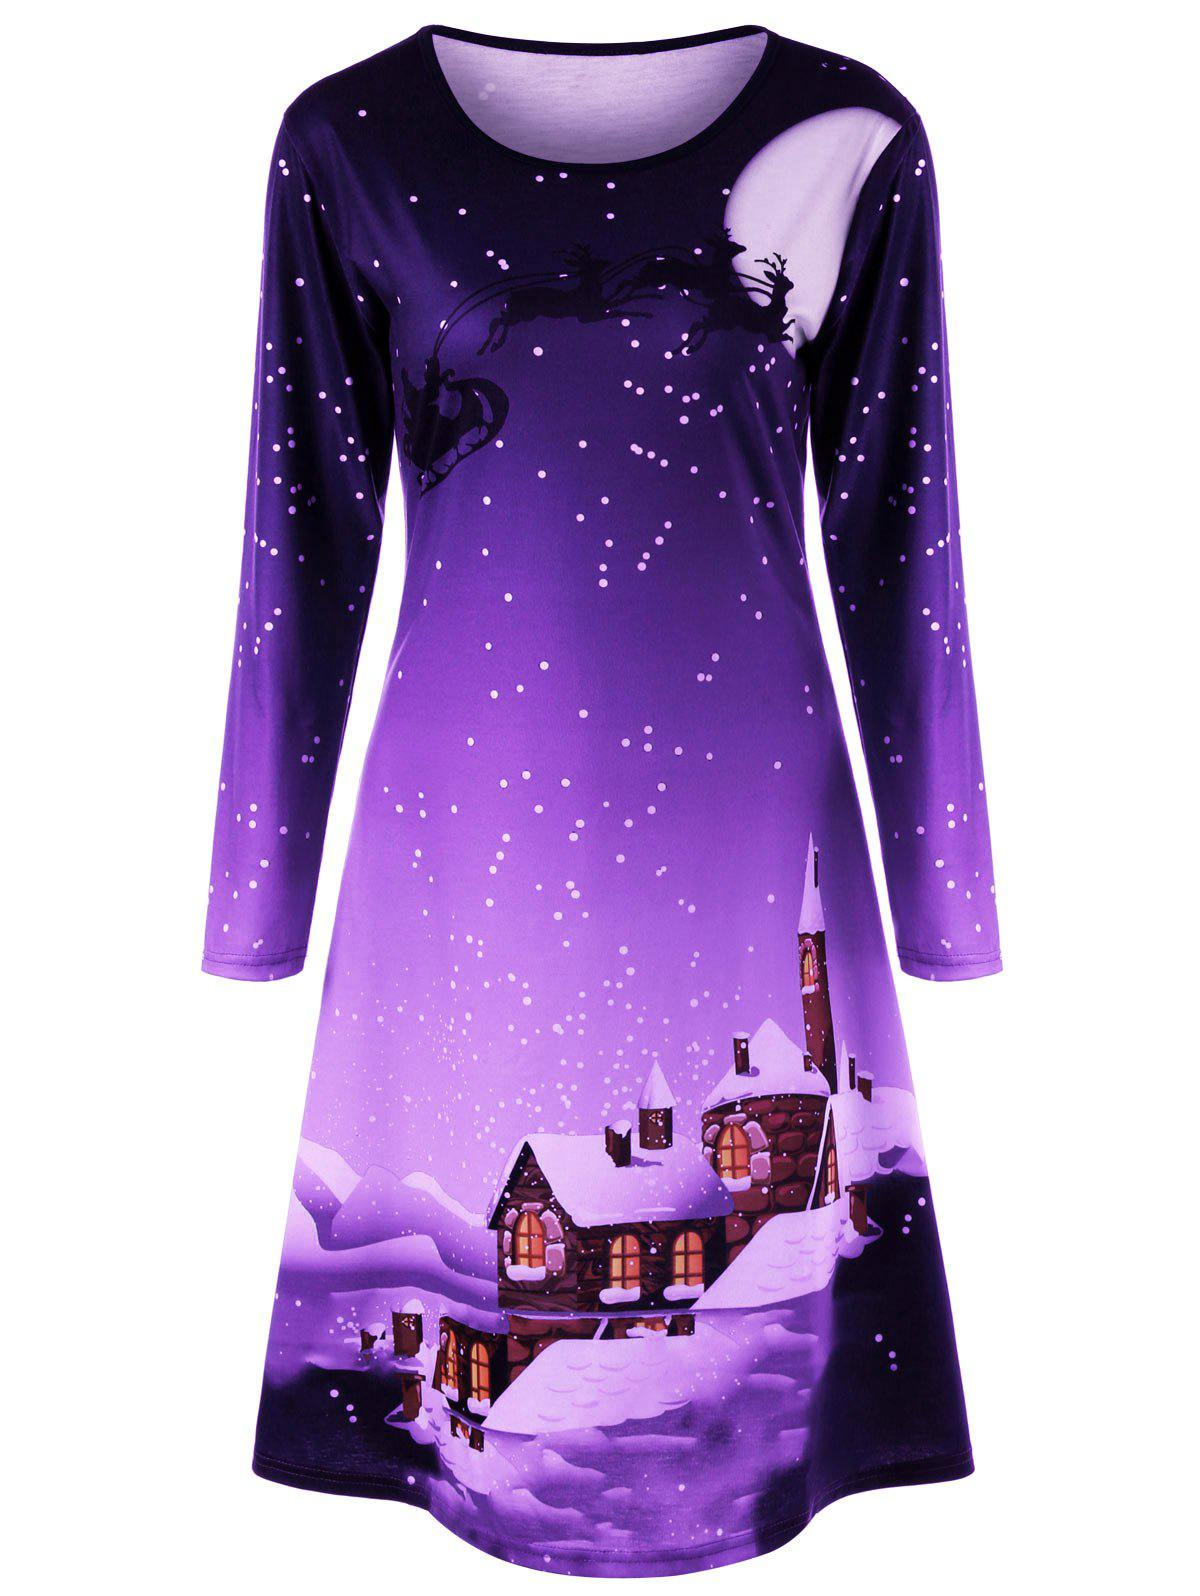 Christmas Plus Size Graphic Long Sleeve DressWOMEN<br><br>Size: XL; Color: PURPLE; Style: Brief; Material: Polyester,Spandex; Silhouette: A-Line; Dresses Length: Knee-Length; Neckline: Round Collar; Sleeve Length: Long Sleeves; Pattern Type: Others; With Belt: No; Season: Fall,Spring; Weight: 0.3600kg; Package Contents: 1 x Dress;